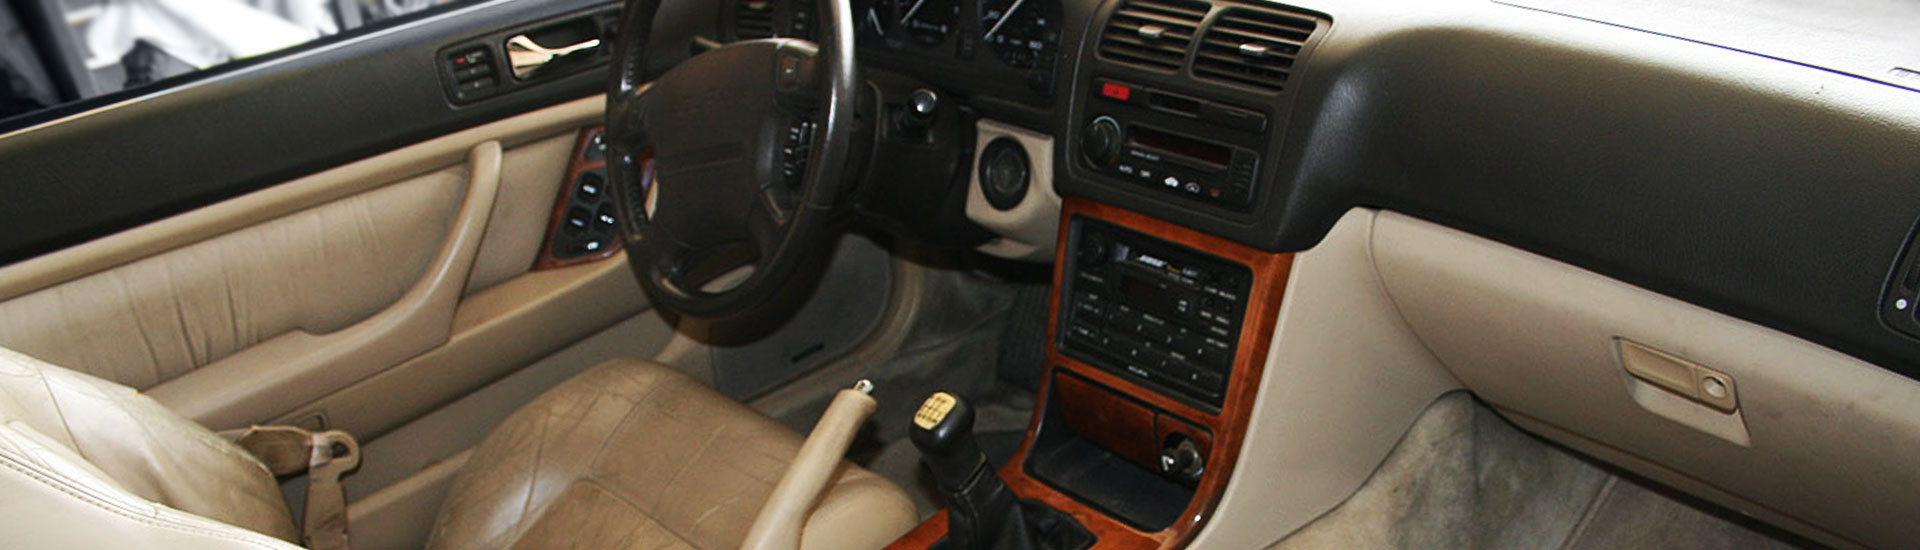 Acura Legend Custom Dash Kits